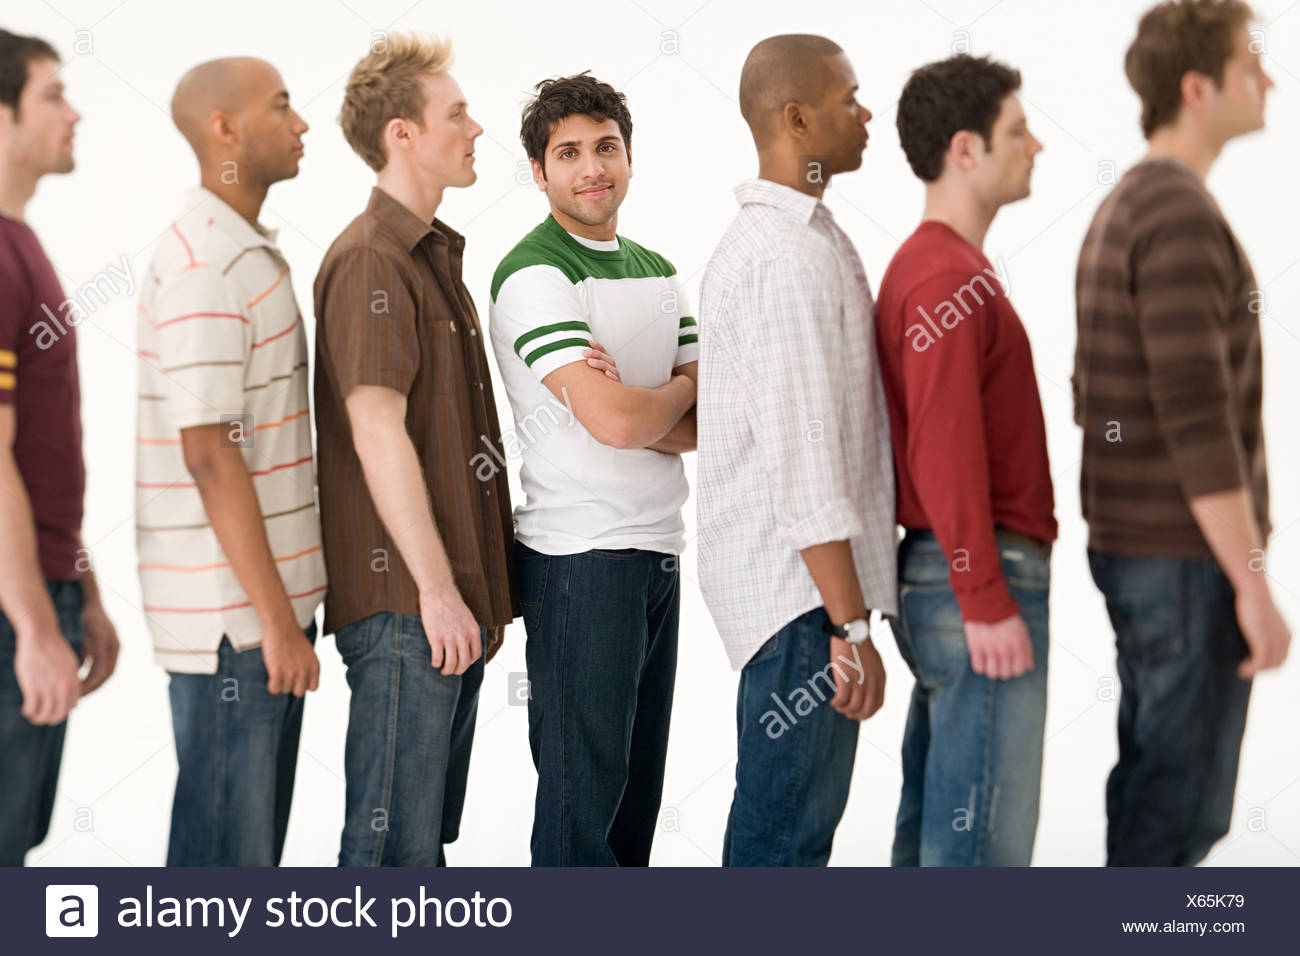 Young man in a row of men - Stock Image